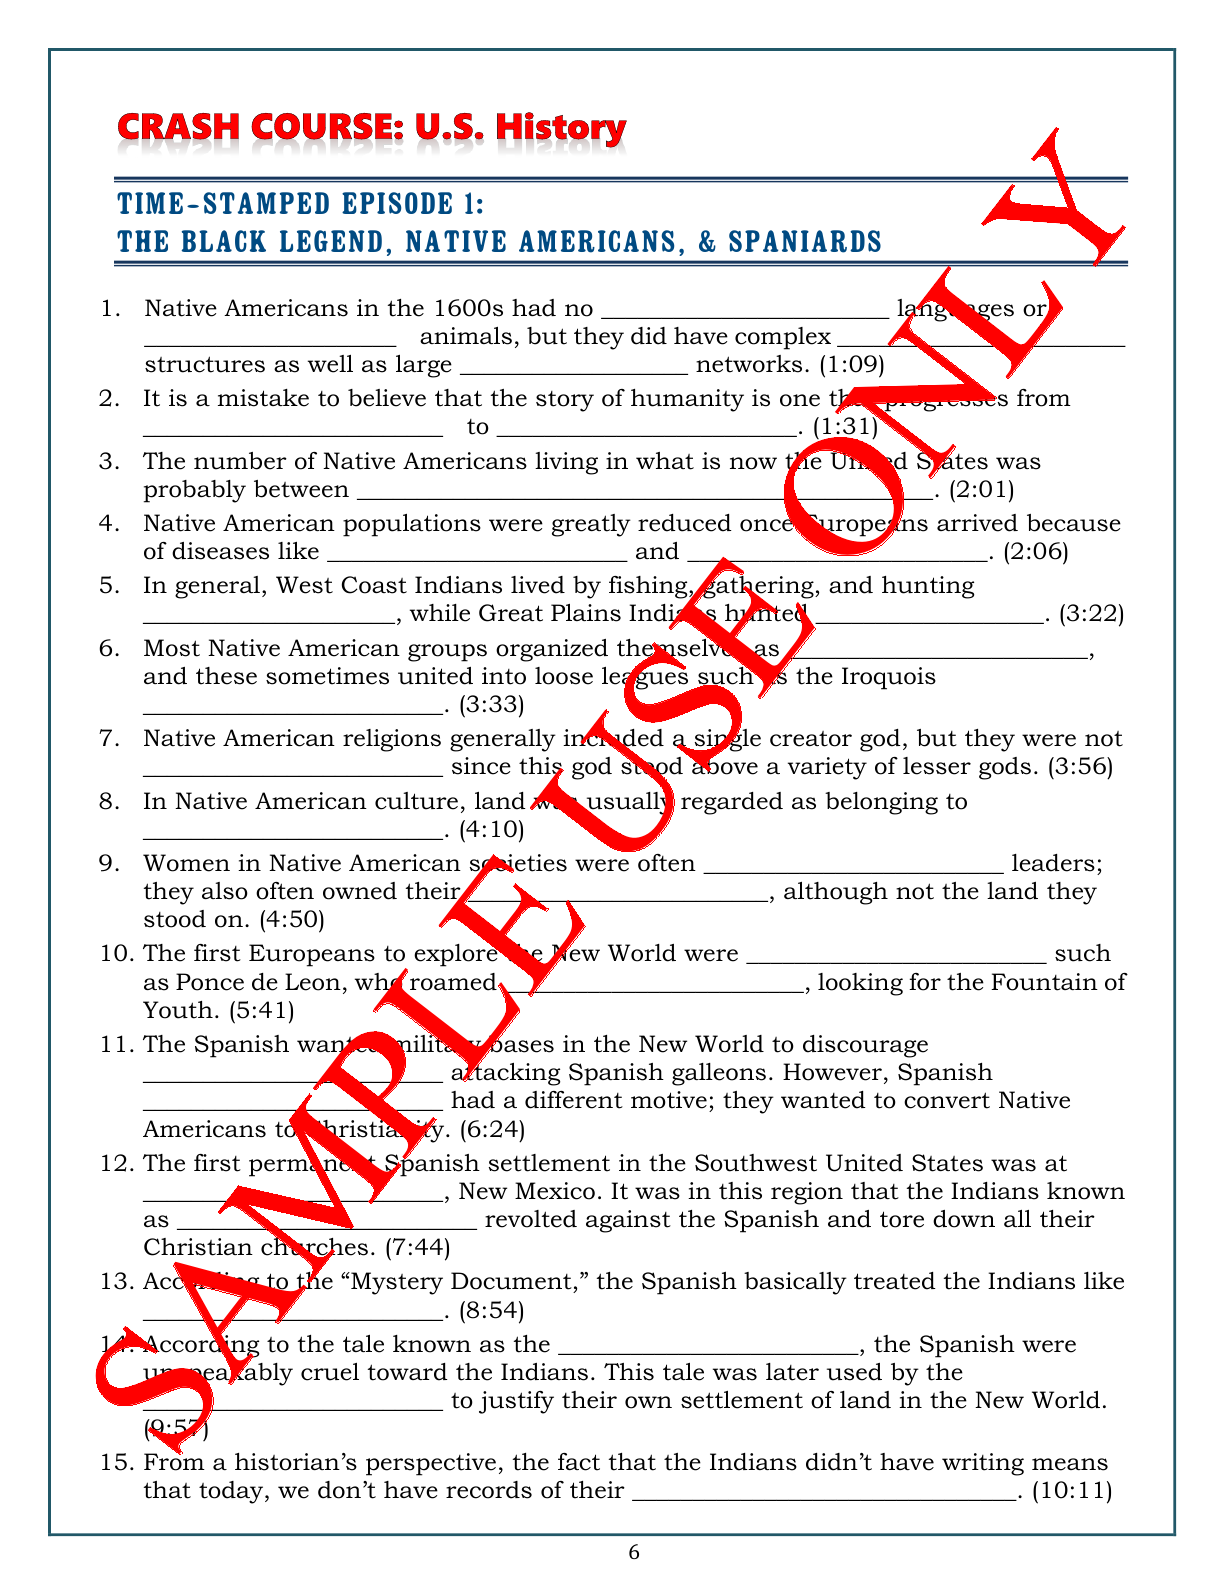 Worksheets American History Worksheets crash course u s history worksheets episodes 1 5 make teaching learning fun a mix of tf fill in and free answer formats these histo